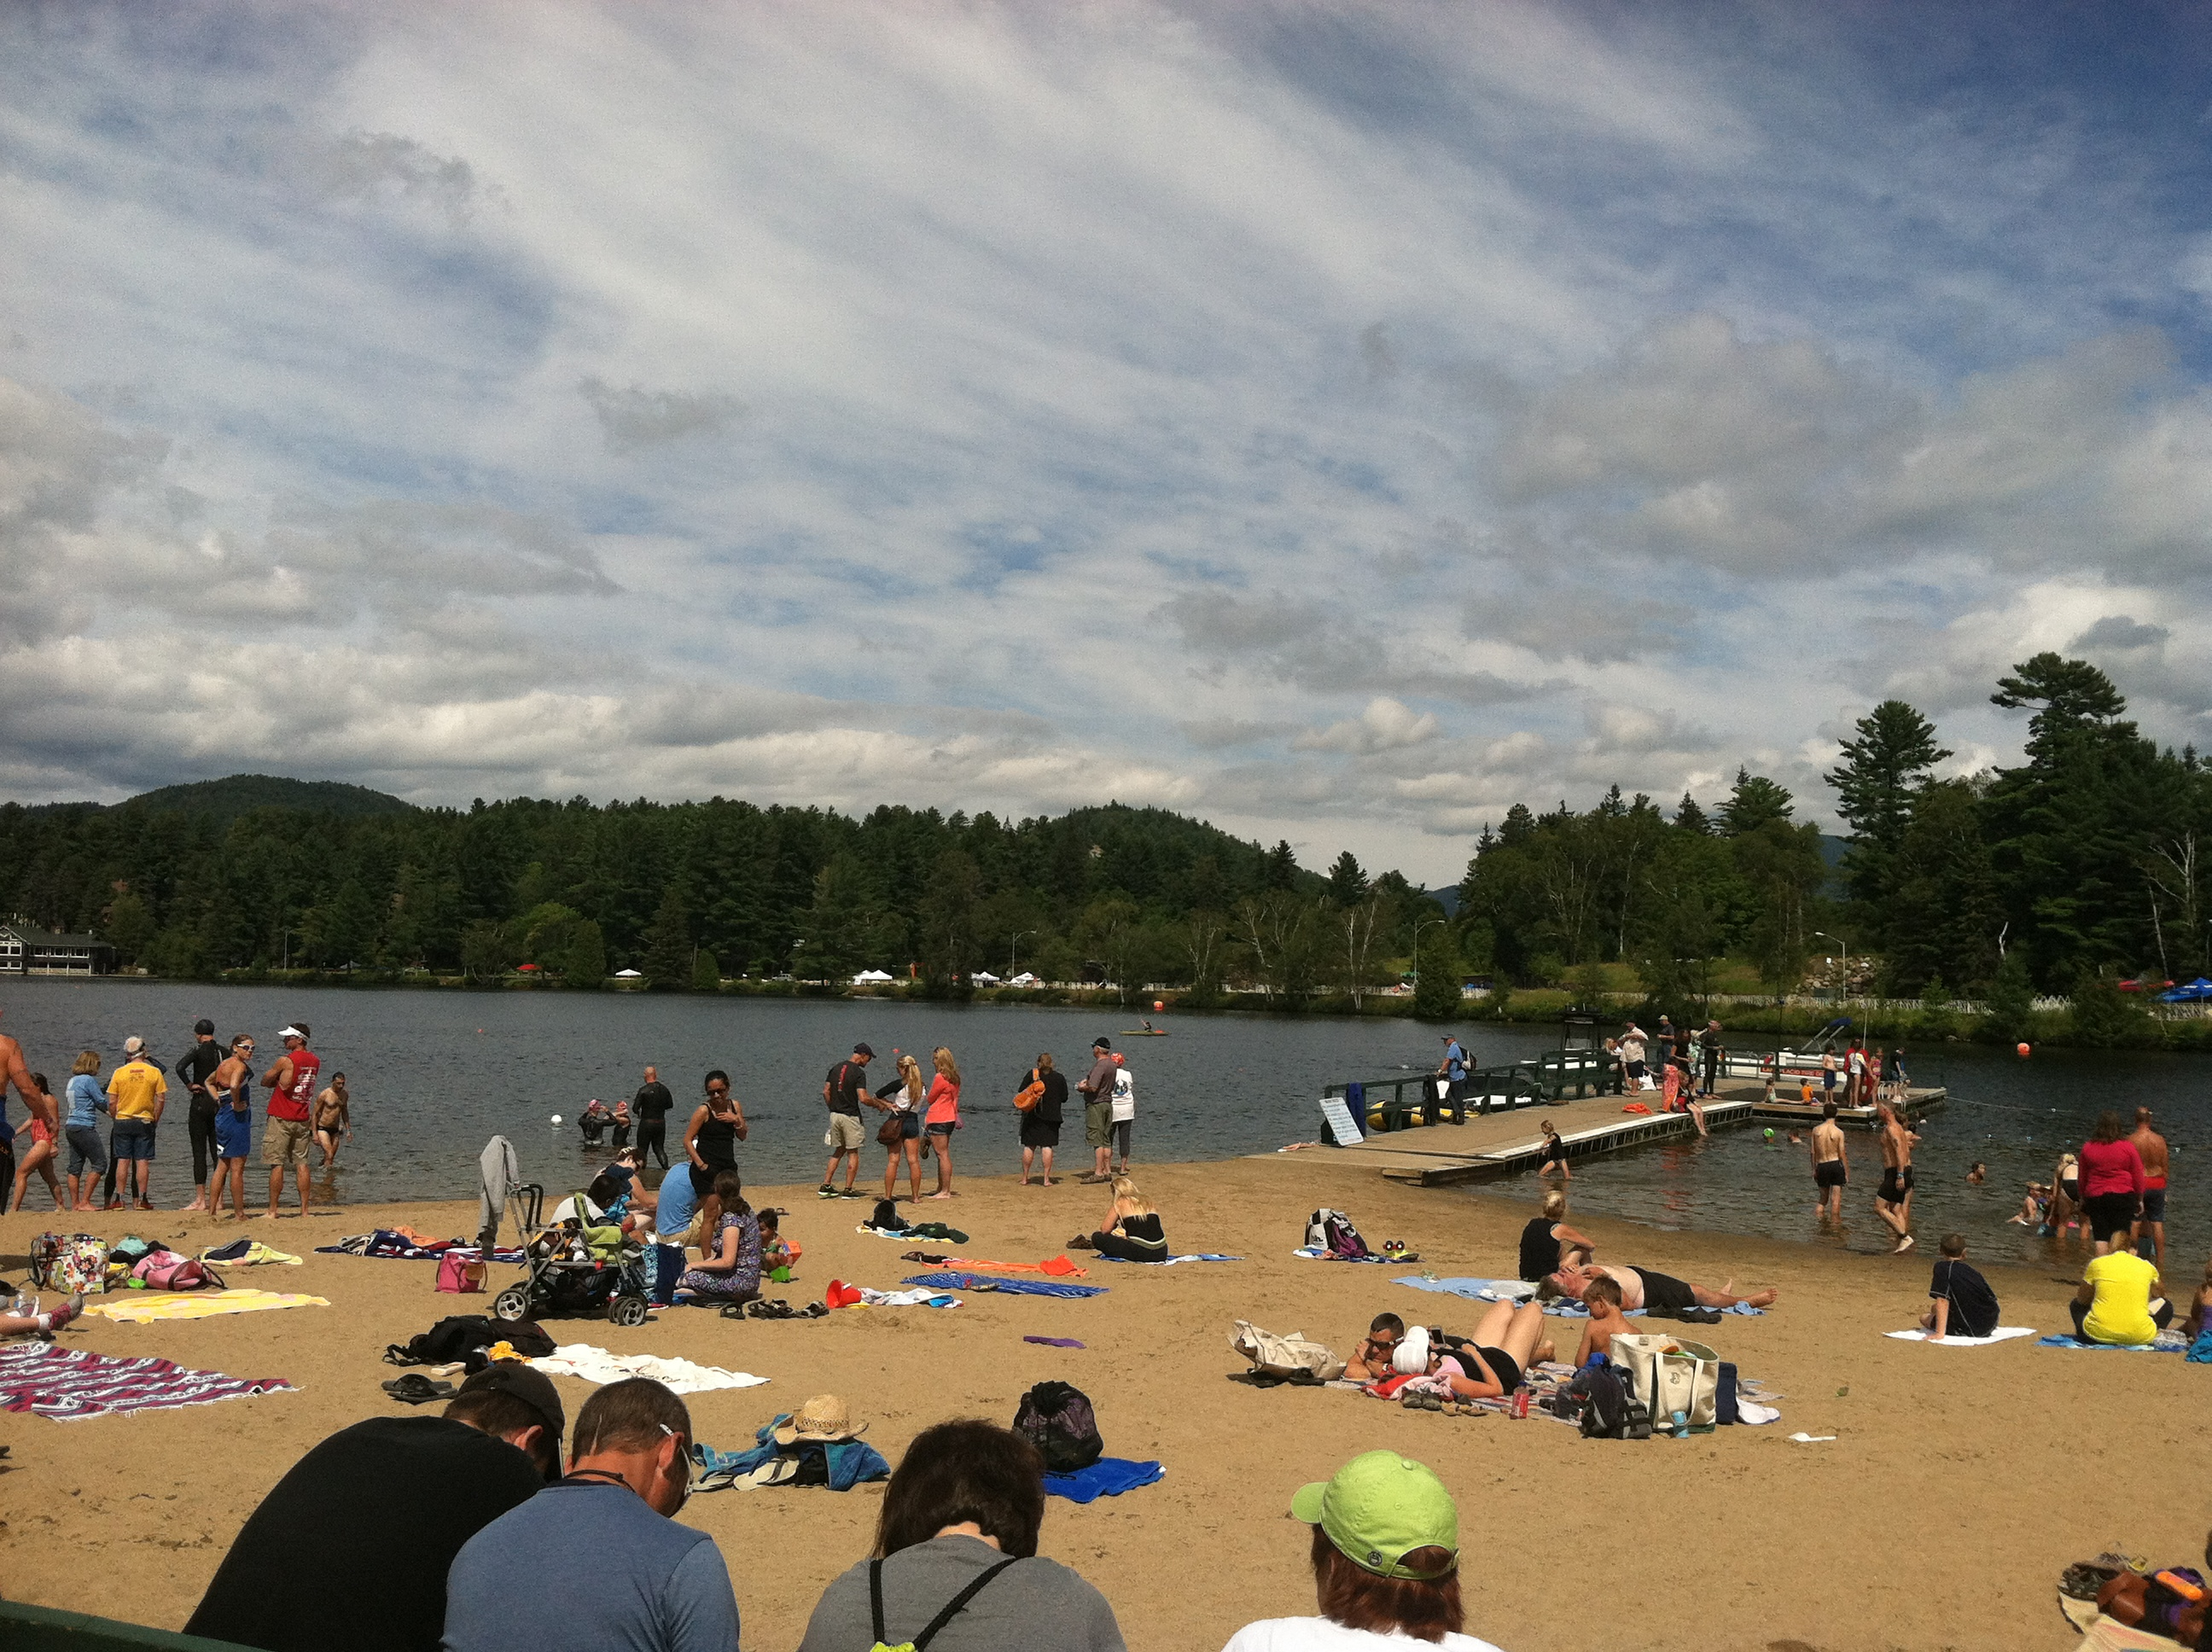 Practice swim in Mirror Lake - the most beautiful lake I've ever swum in!